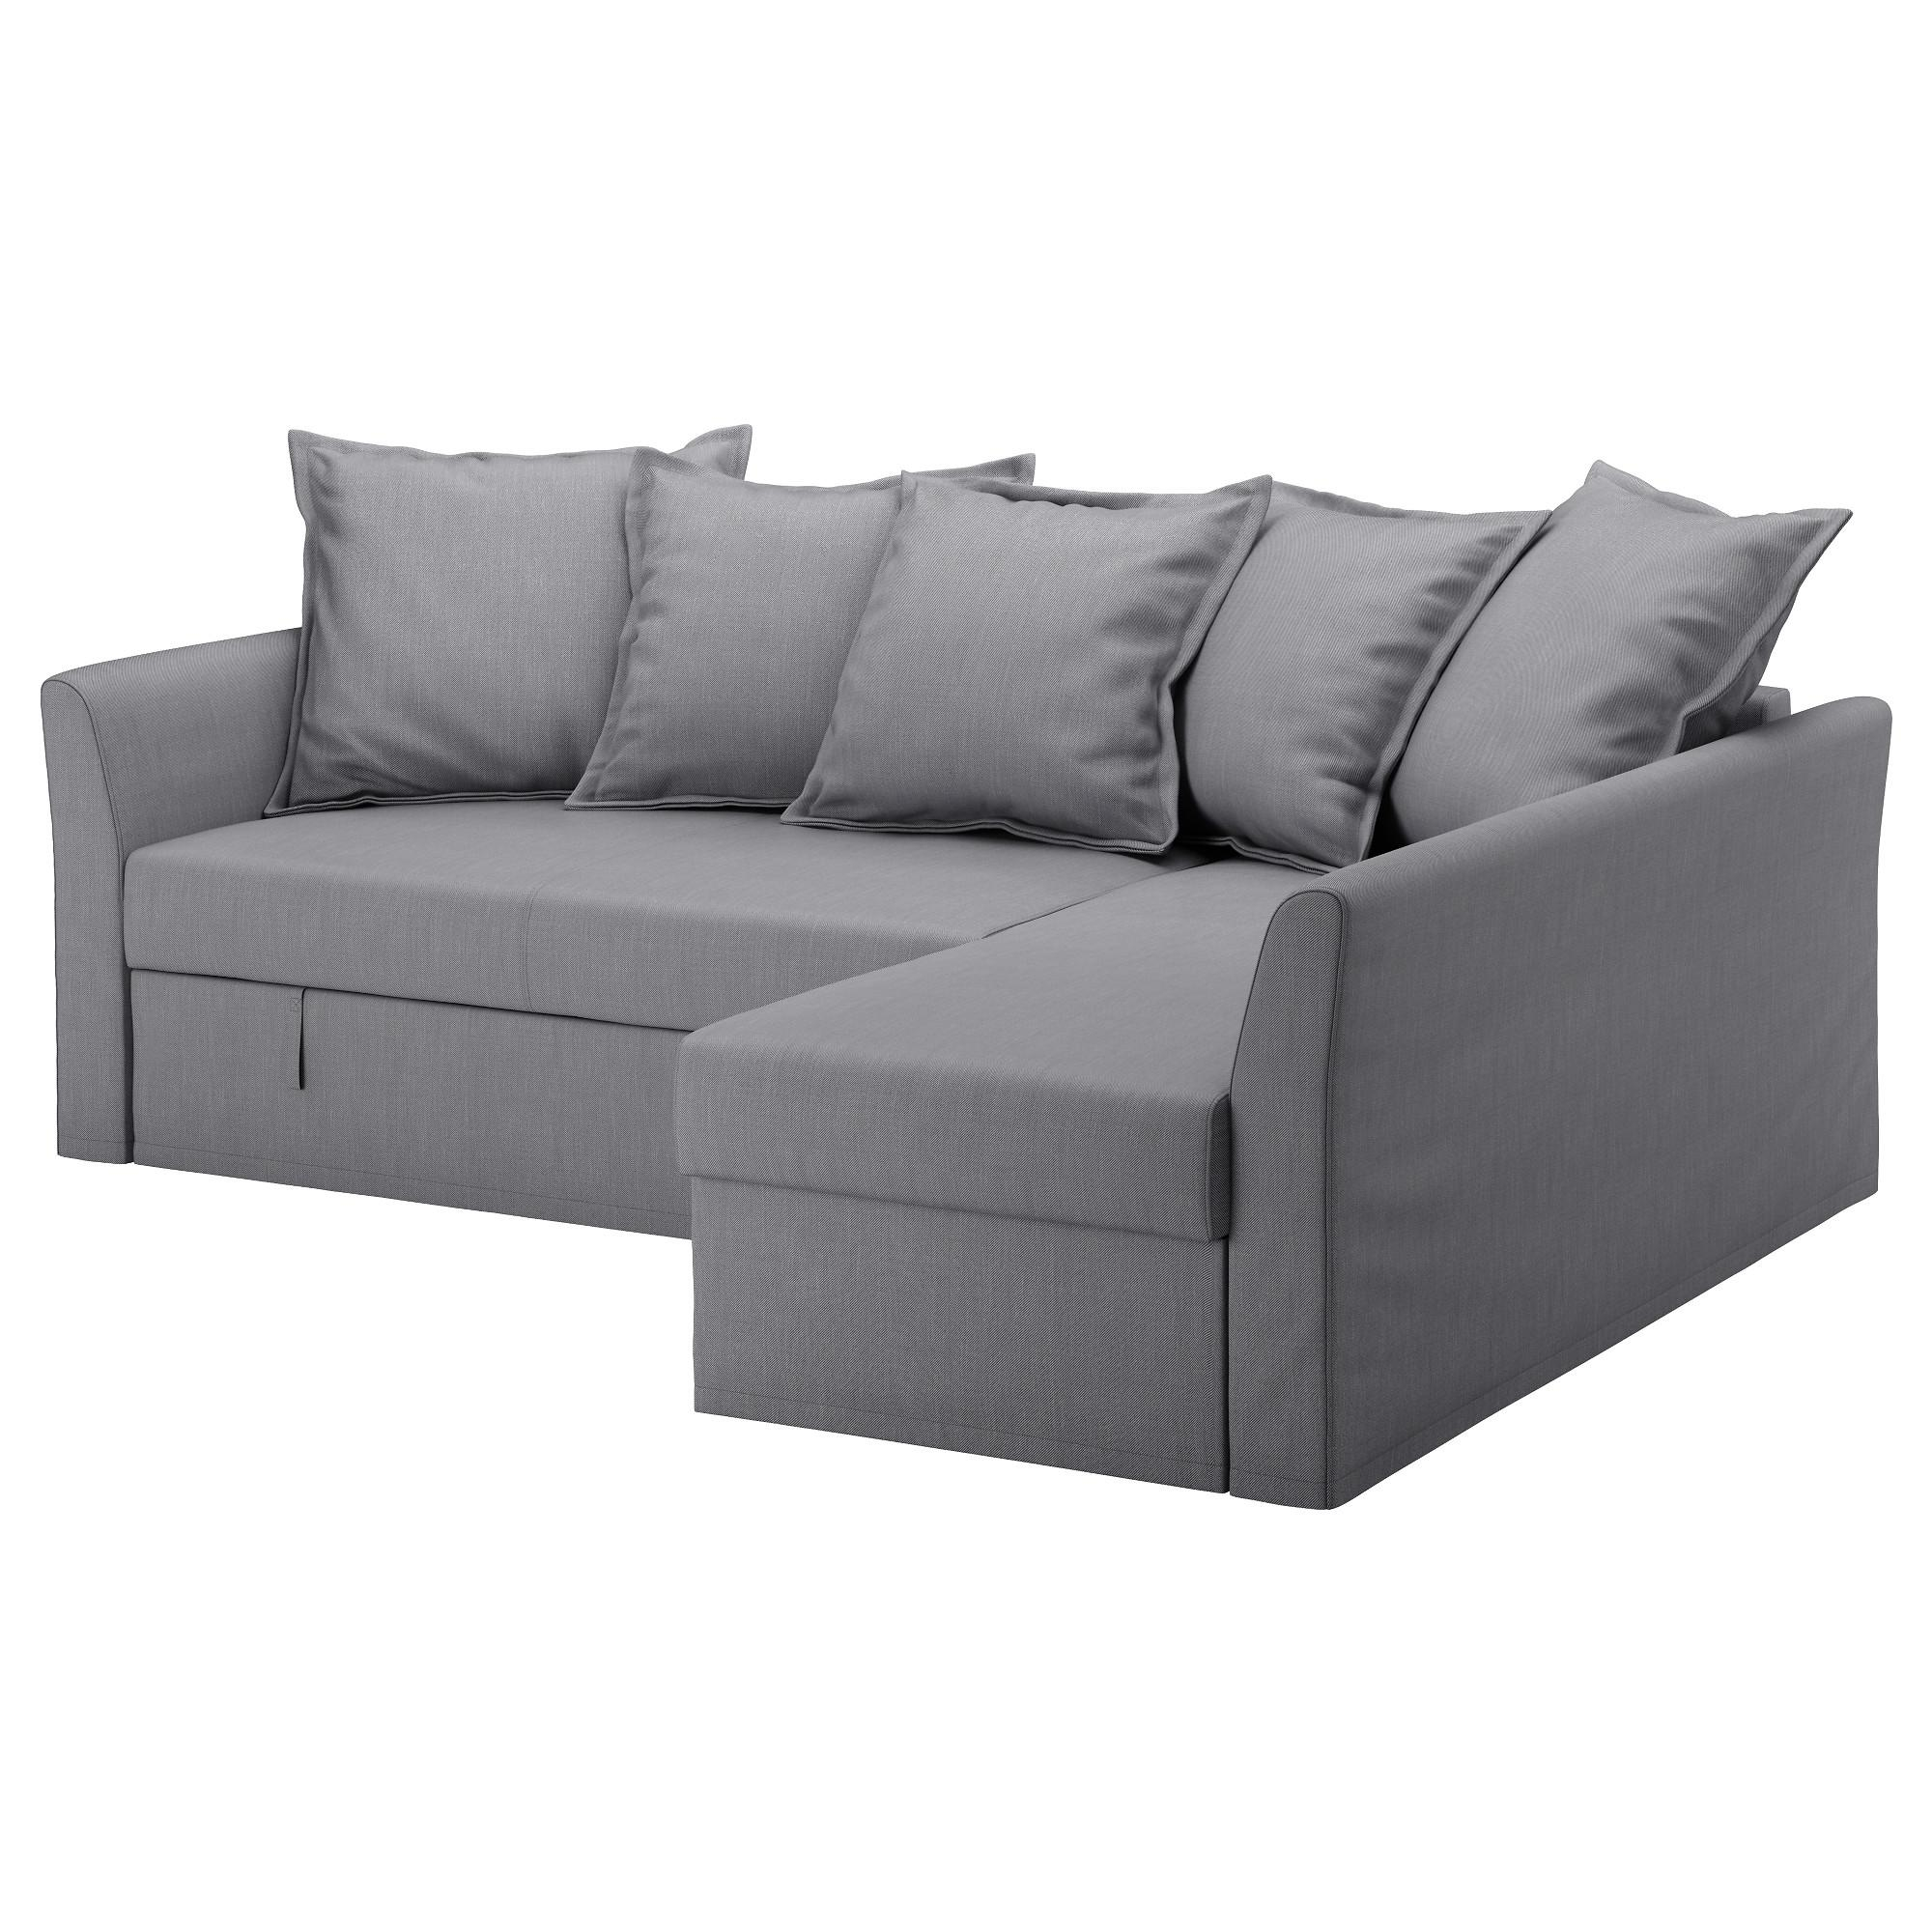 Holmsund Cover For Sleeper Sectional, 3 Seat – Nordvalla Medium Intended For Ikea Sectional Sleeper Sofa (View 2 of 20)